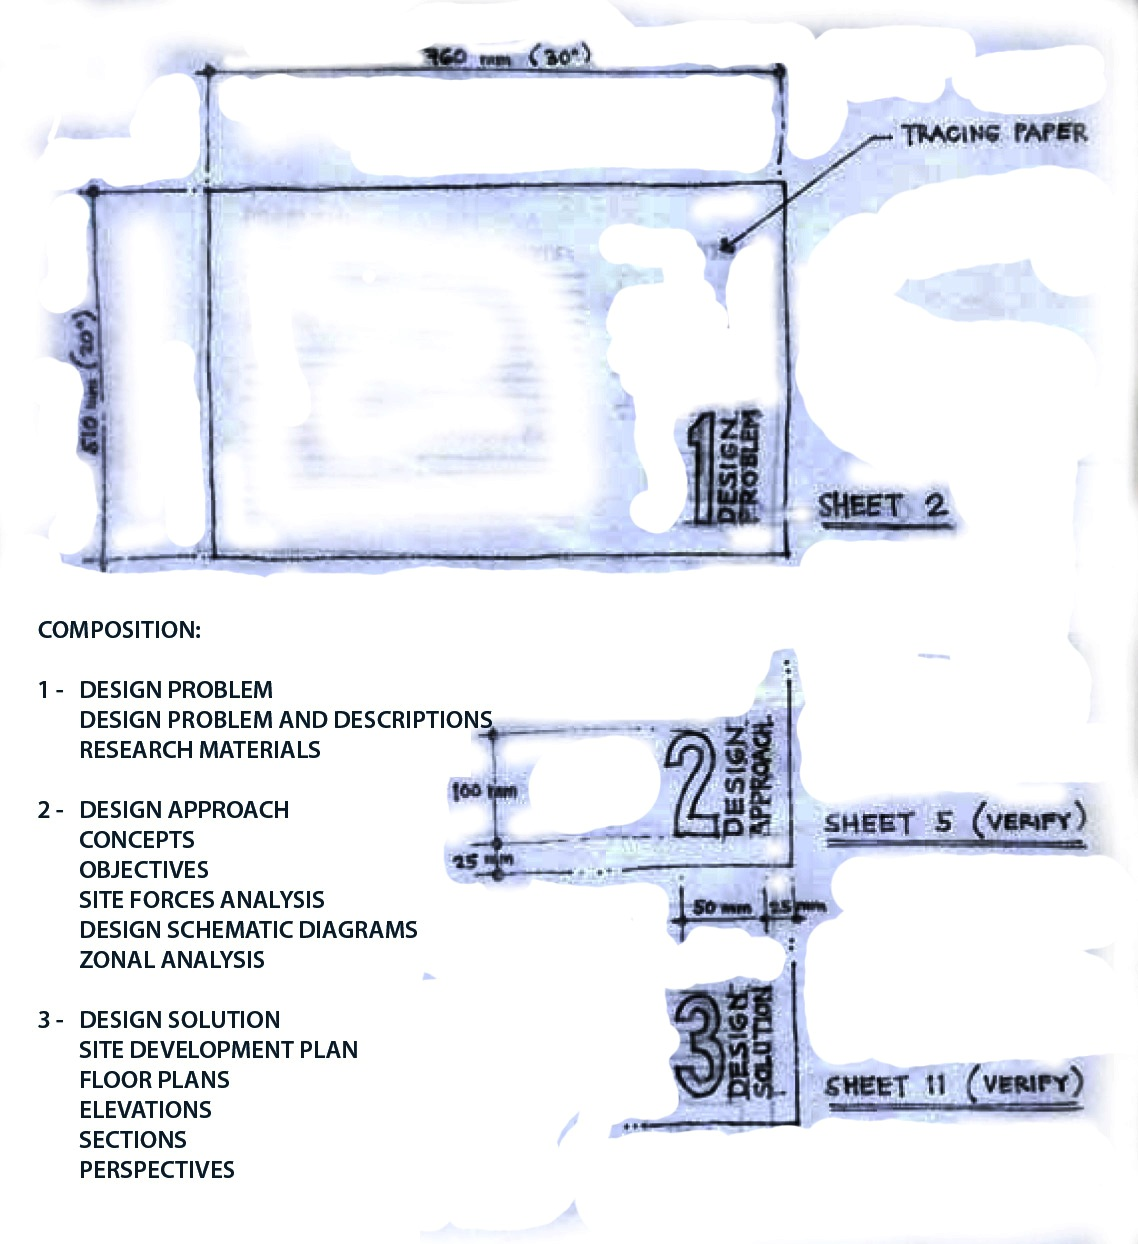 Architecture Design Sheet Format academy of architecture: architectural design format